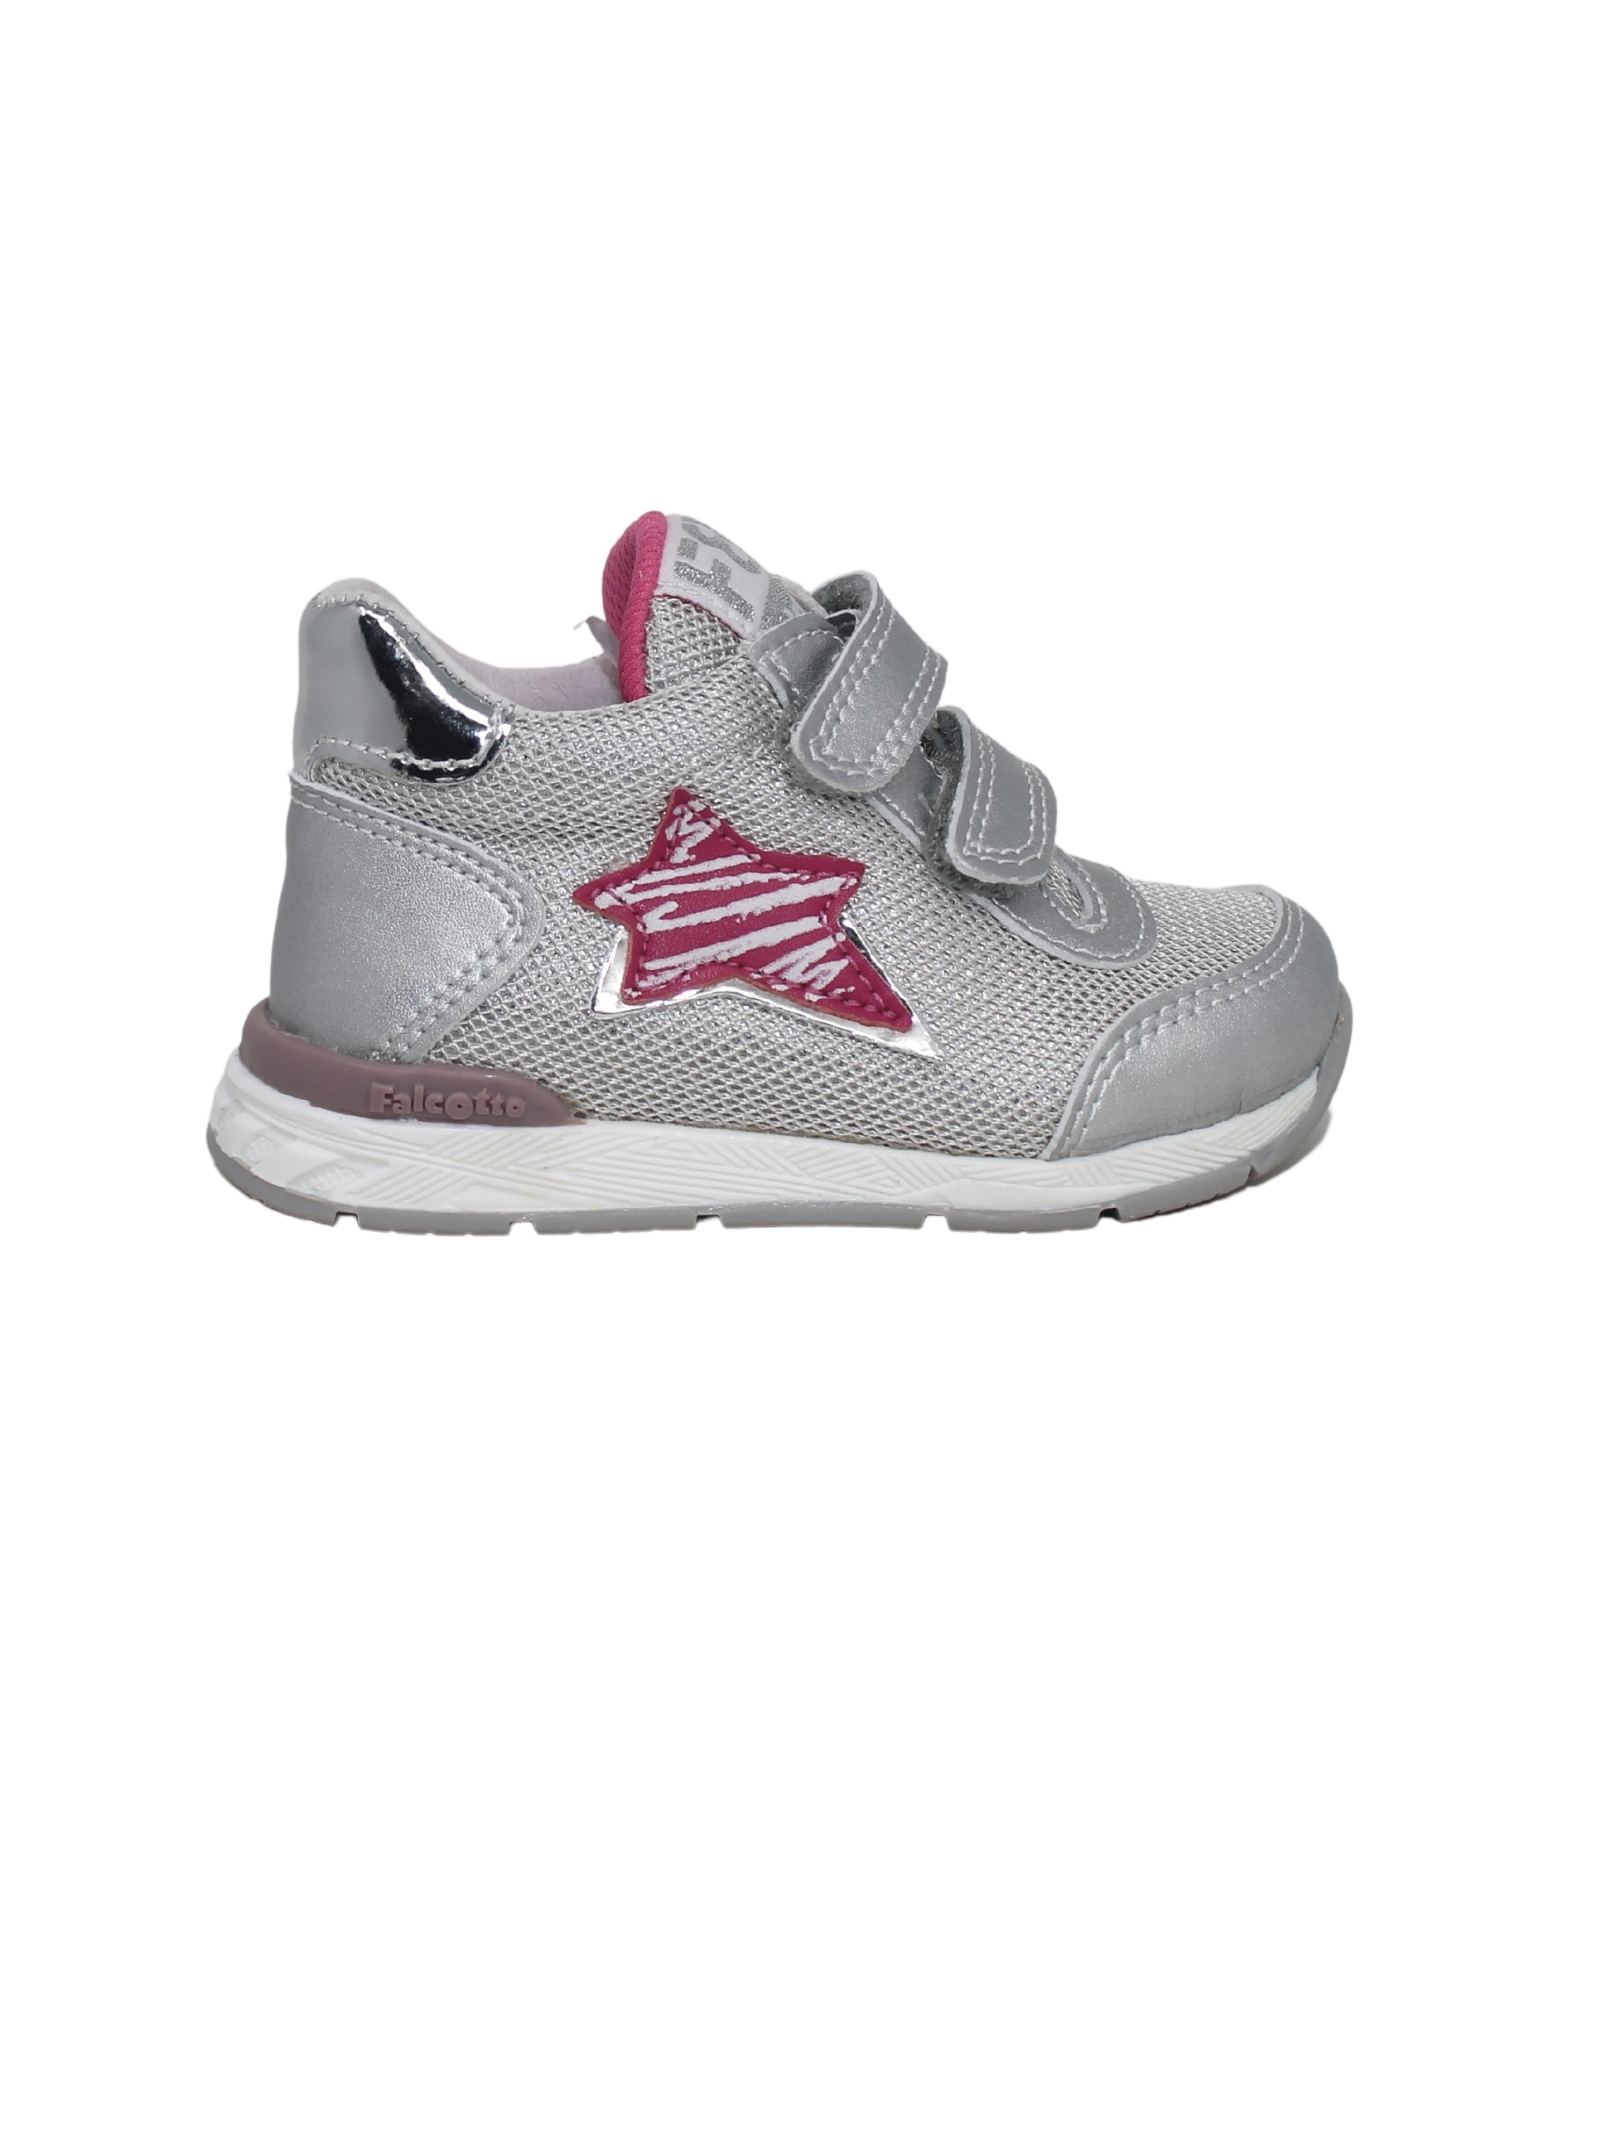 Sport sneakers with star FALCOTTO | Sneakers | 0012015873050Q03SILVER